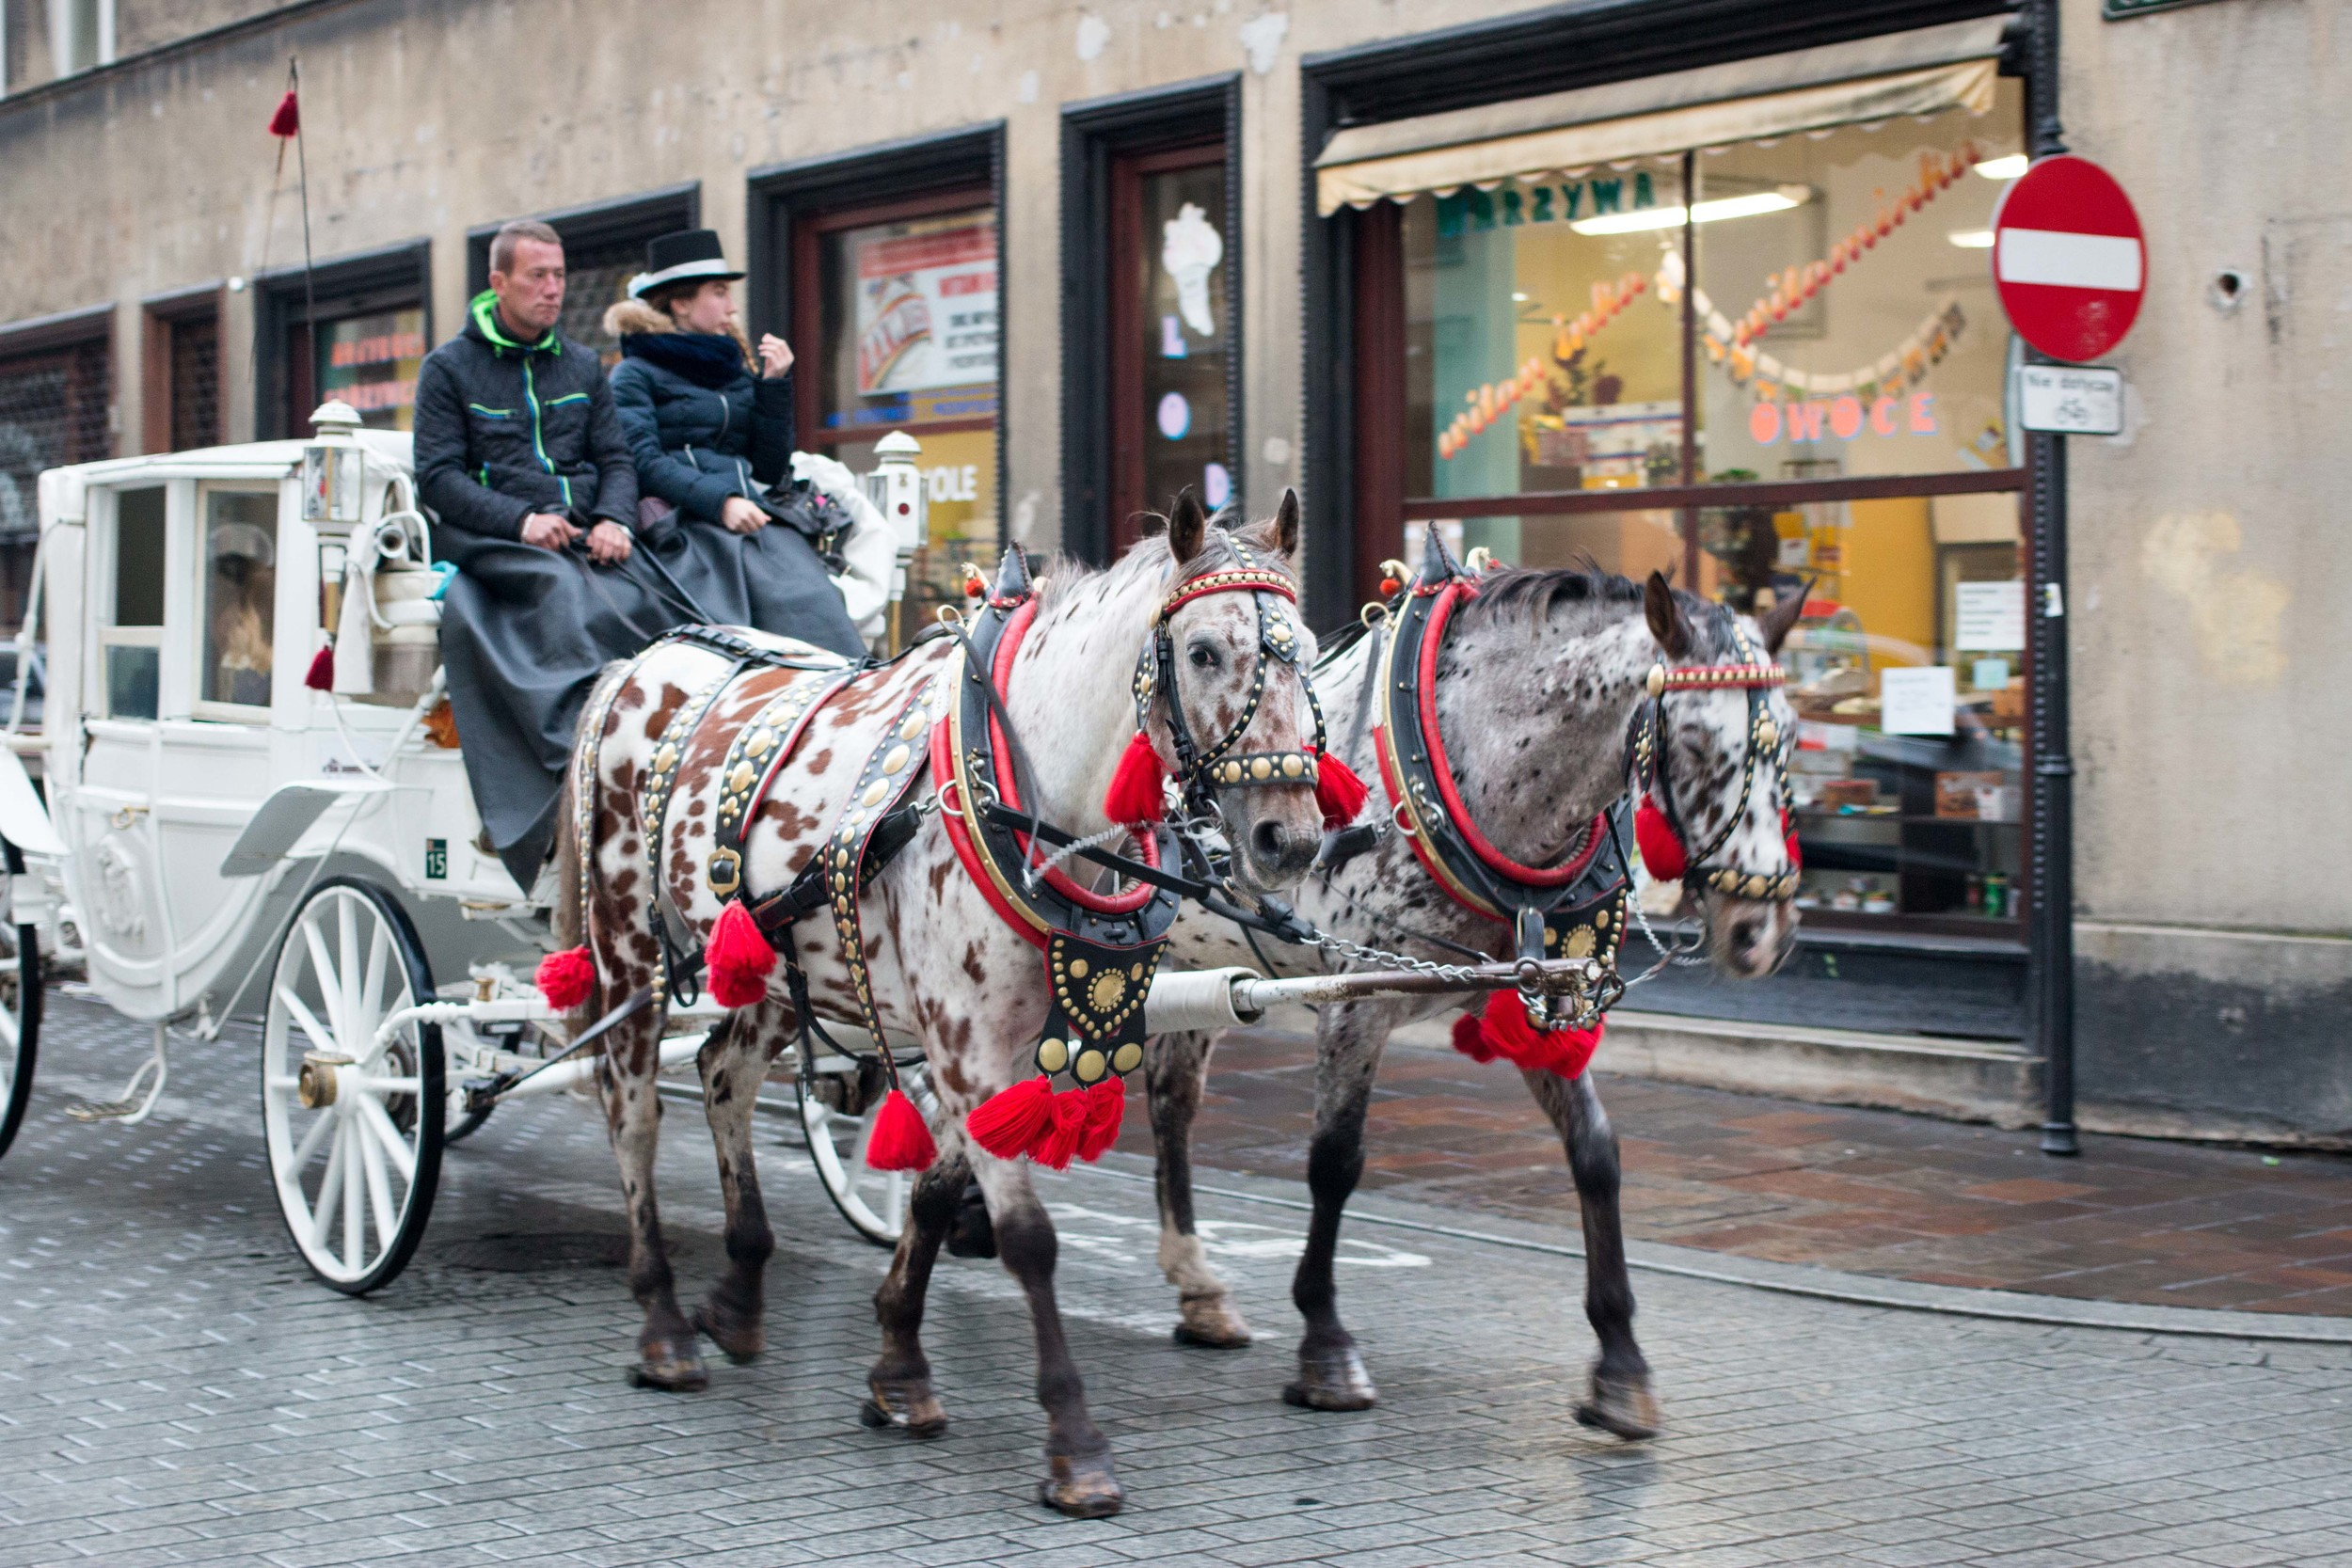 Carriage rides around the old town, drawn by traditionally decorated horses.